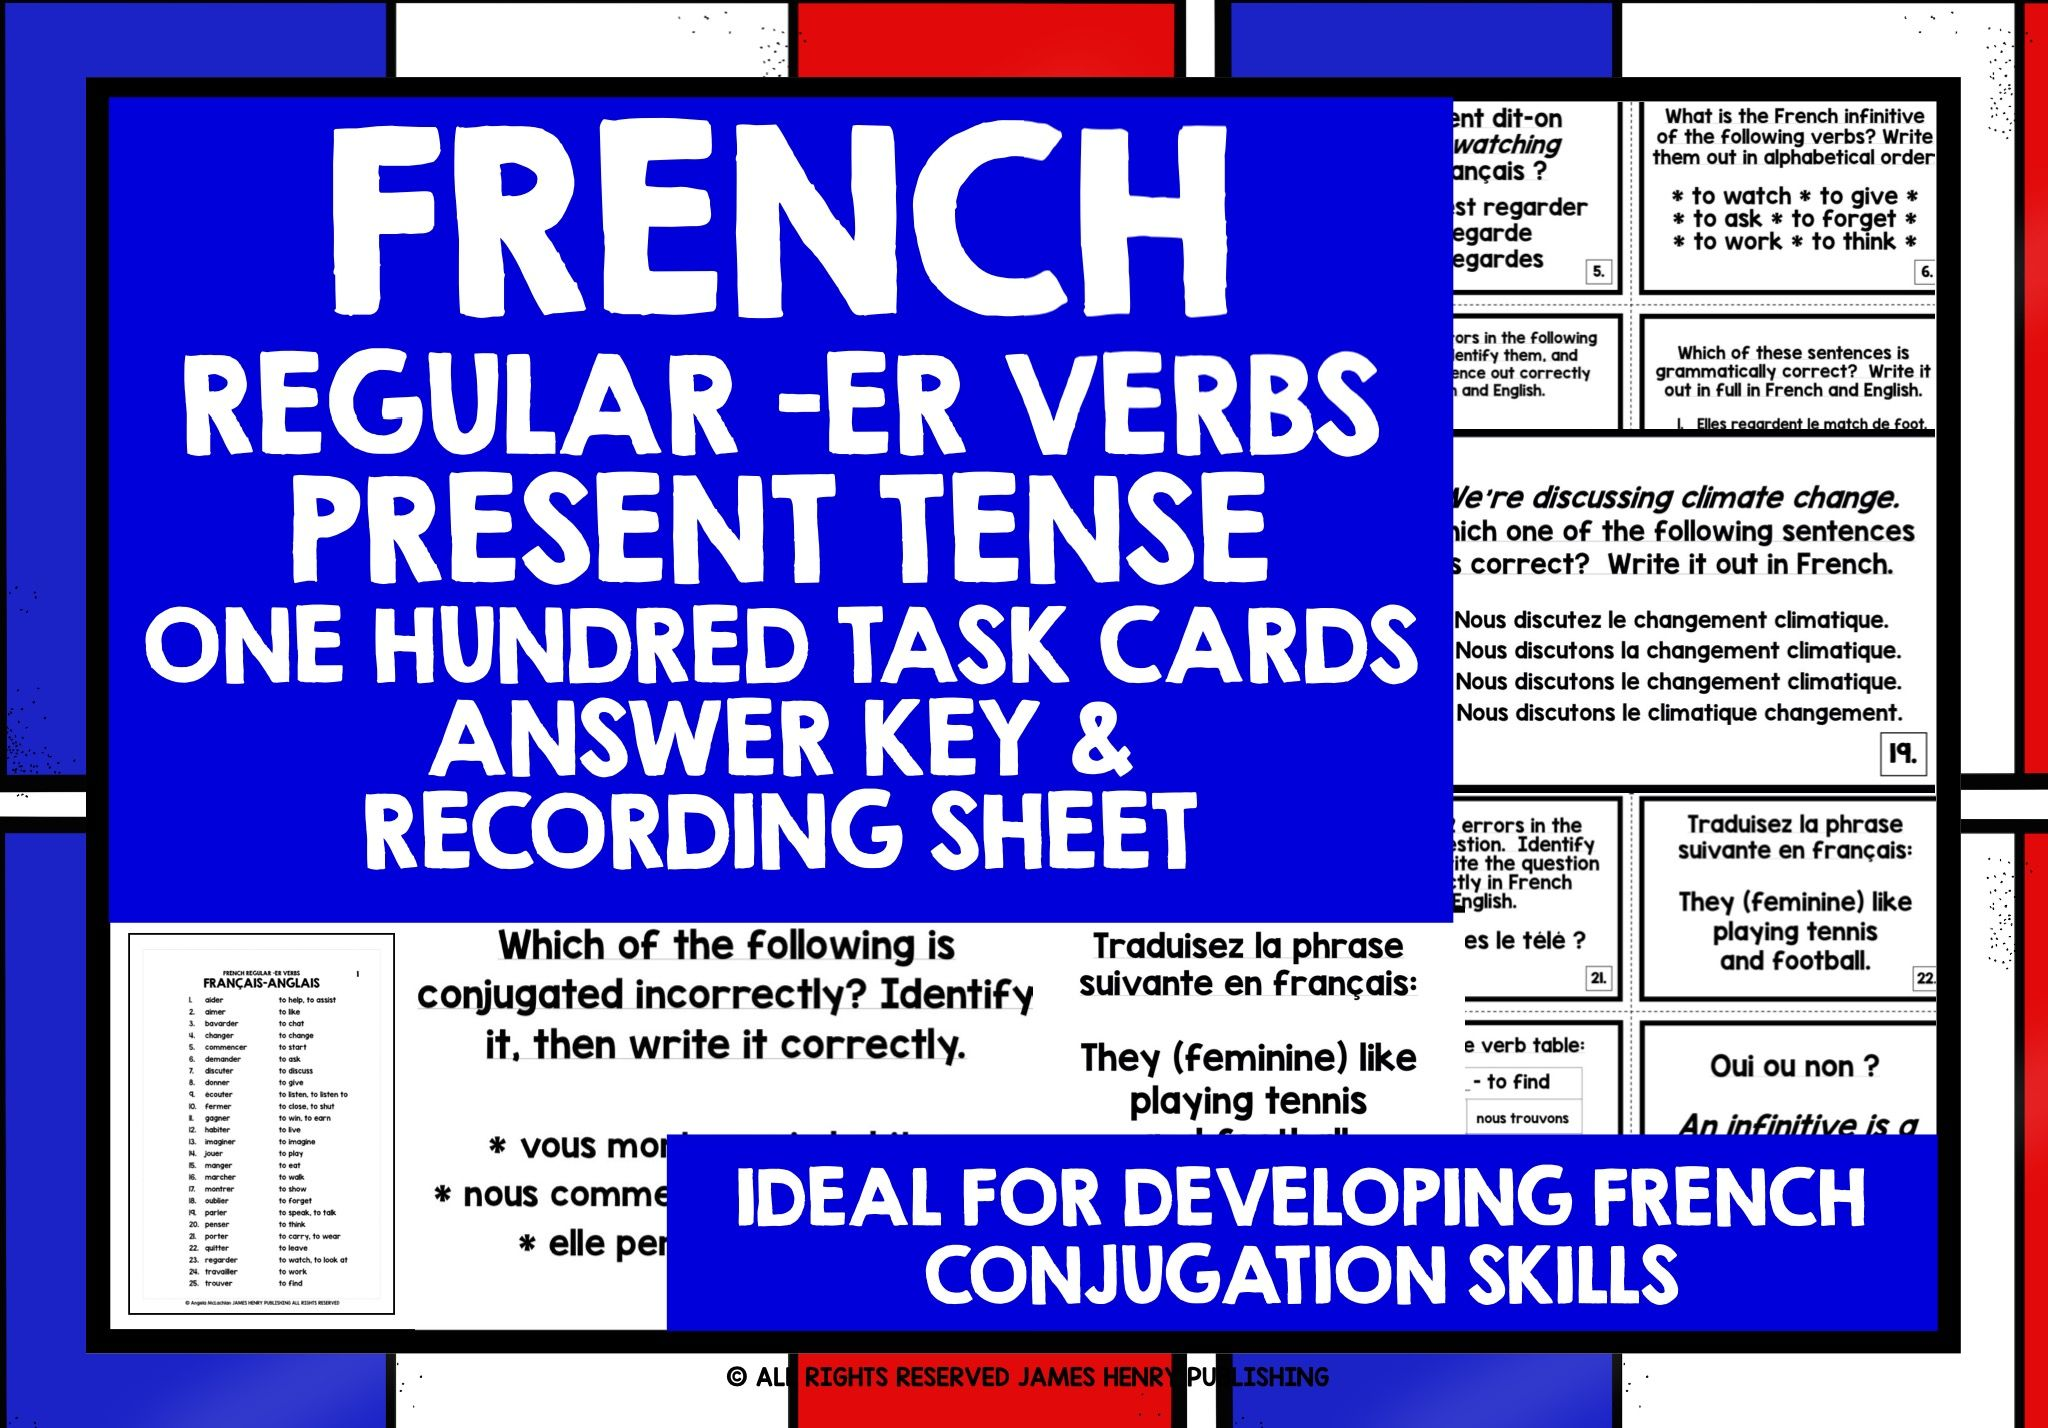 French Verbs Task Cards Verb Task Cards Learn French French Verbs [ 1428 x 2048 Pixel ]